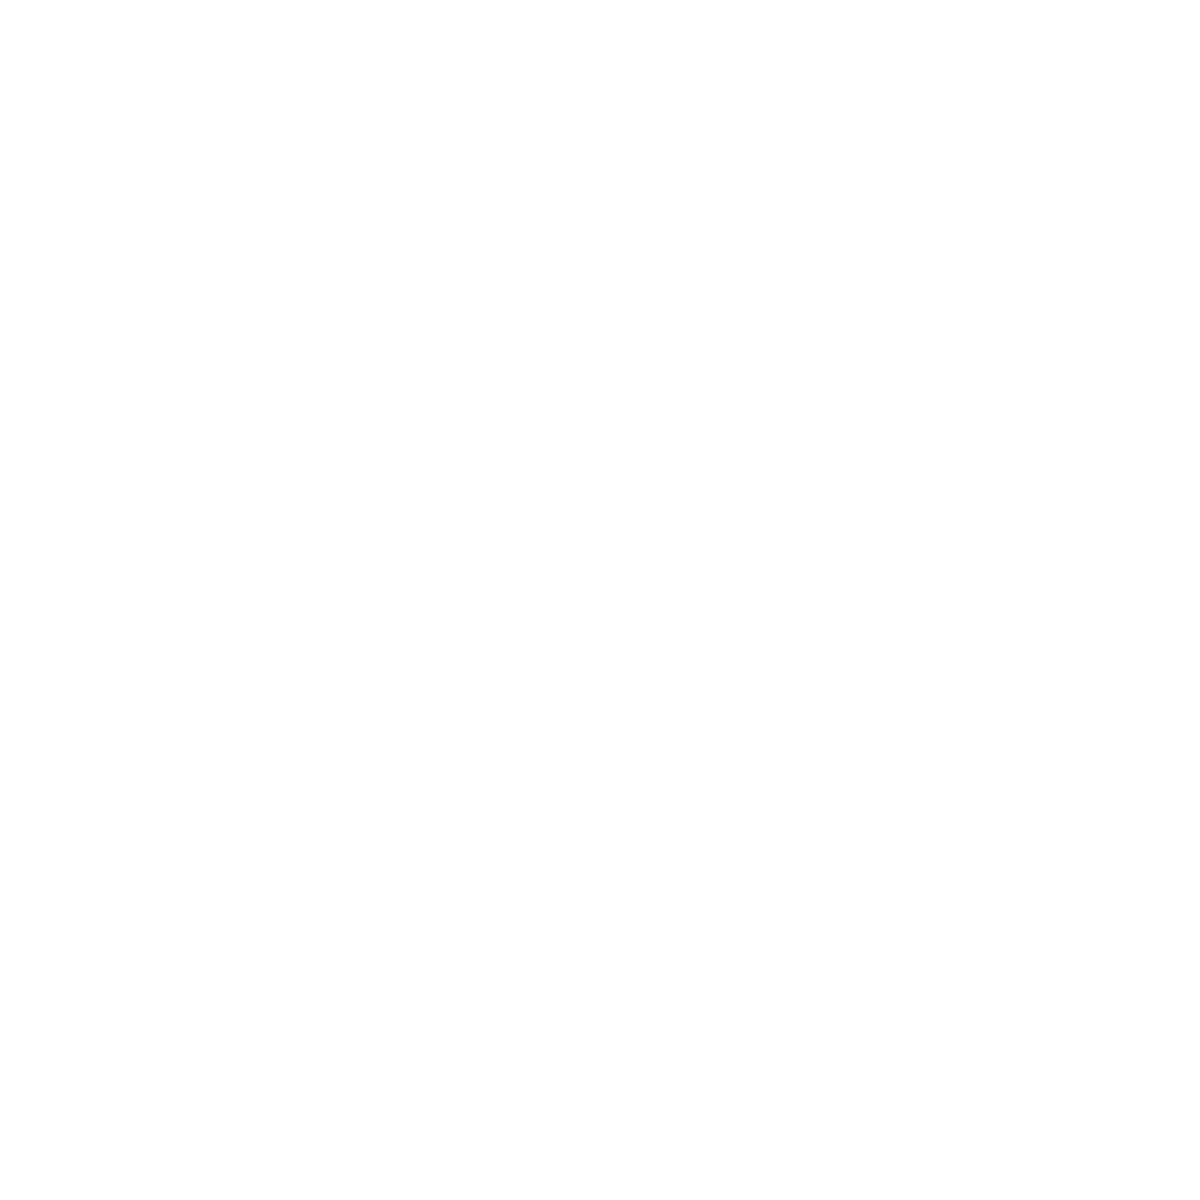 grass mowing icon